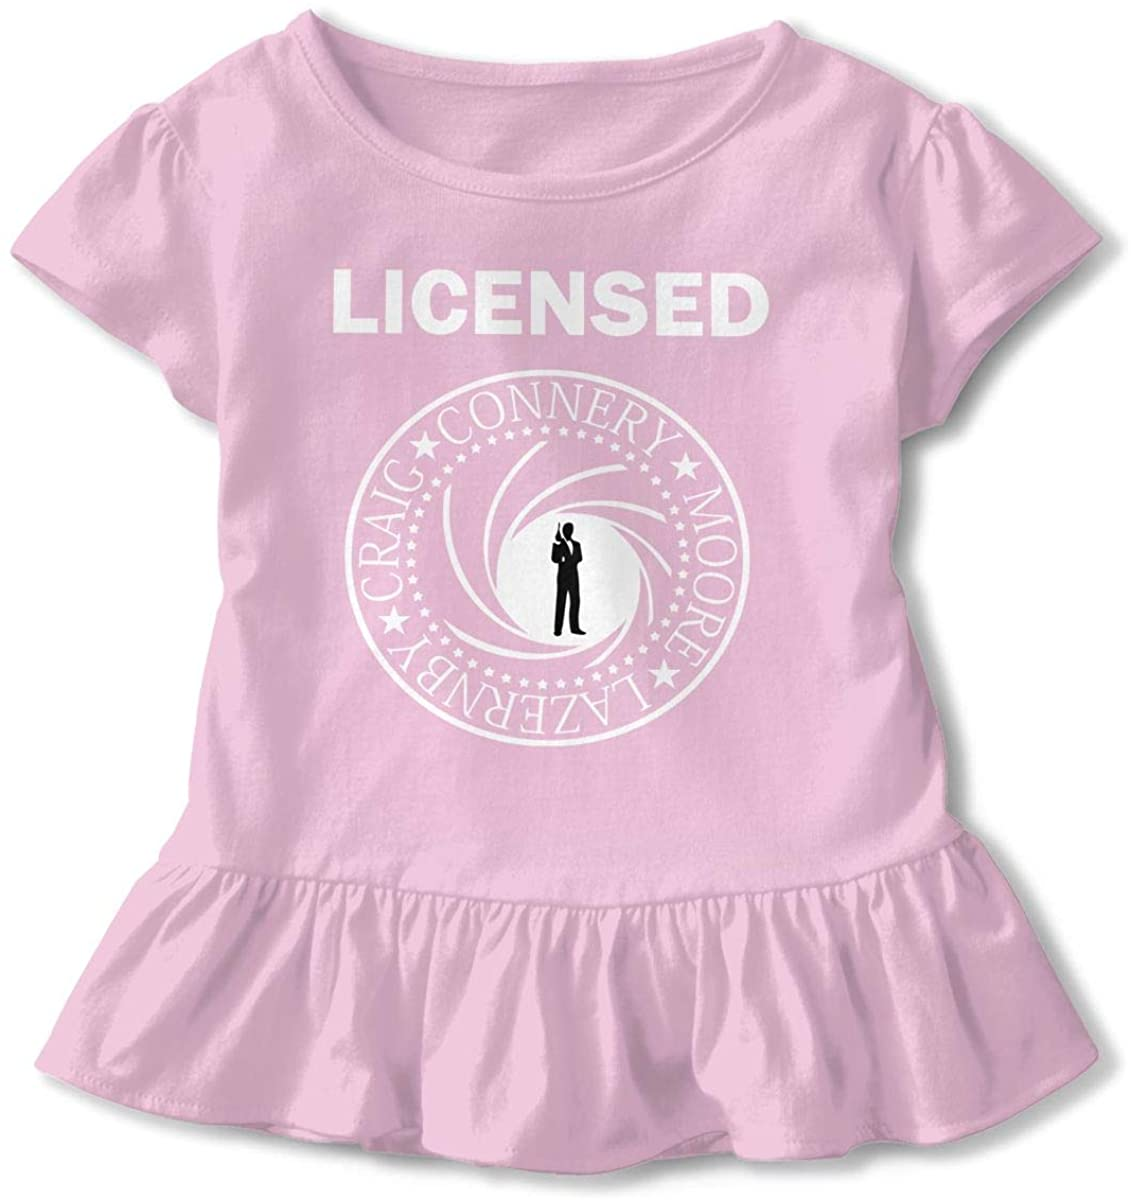 Kids Licensed to Be On Ramones Toddler Short Sleeve T Shirt Children Girls Cotton Graphic Tee Soft Dress (2-6T)